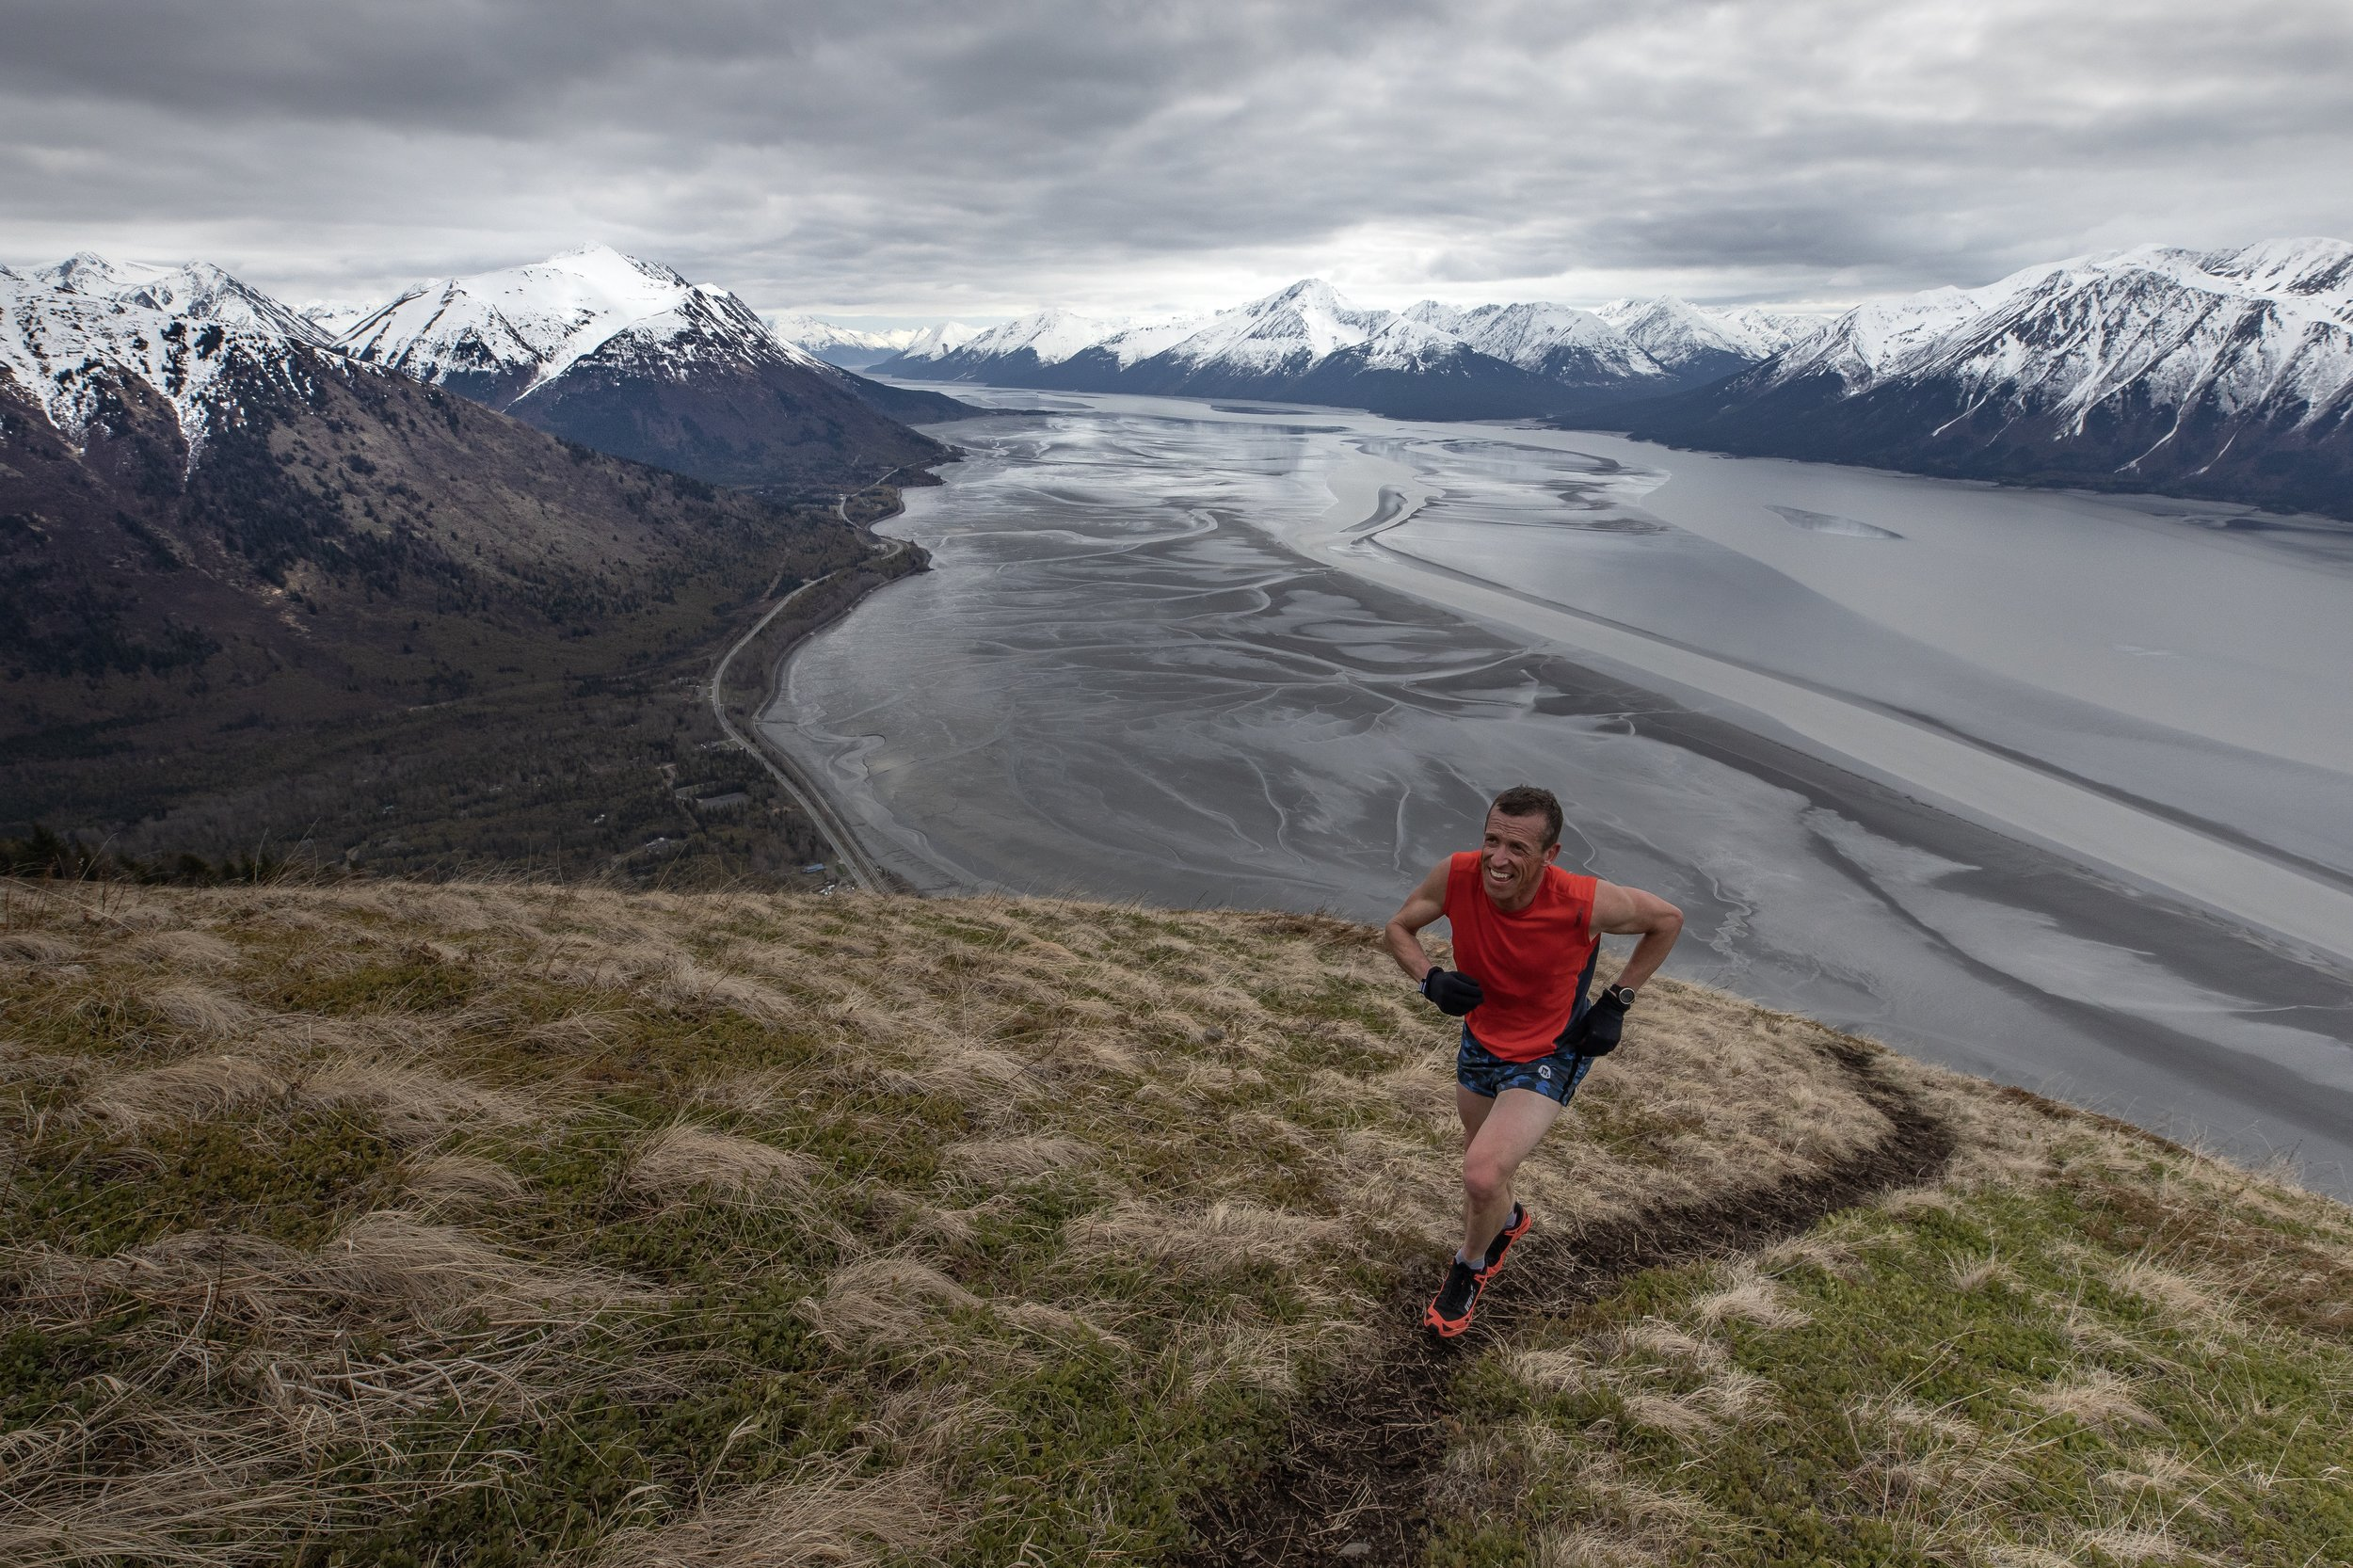 Alaskan endurance athlete Matt Novakovich trains on IndianHouse Peak. A relentless grade and an amazing backdrop, IndianHouse is a local test-piece for Anchorage based mountain athletes.